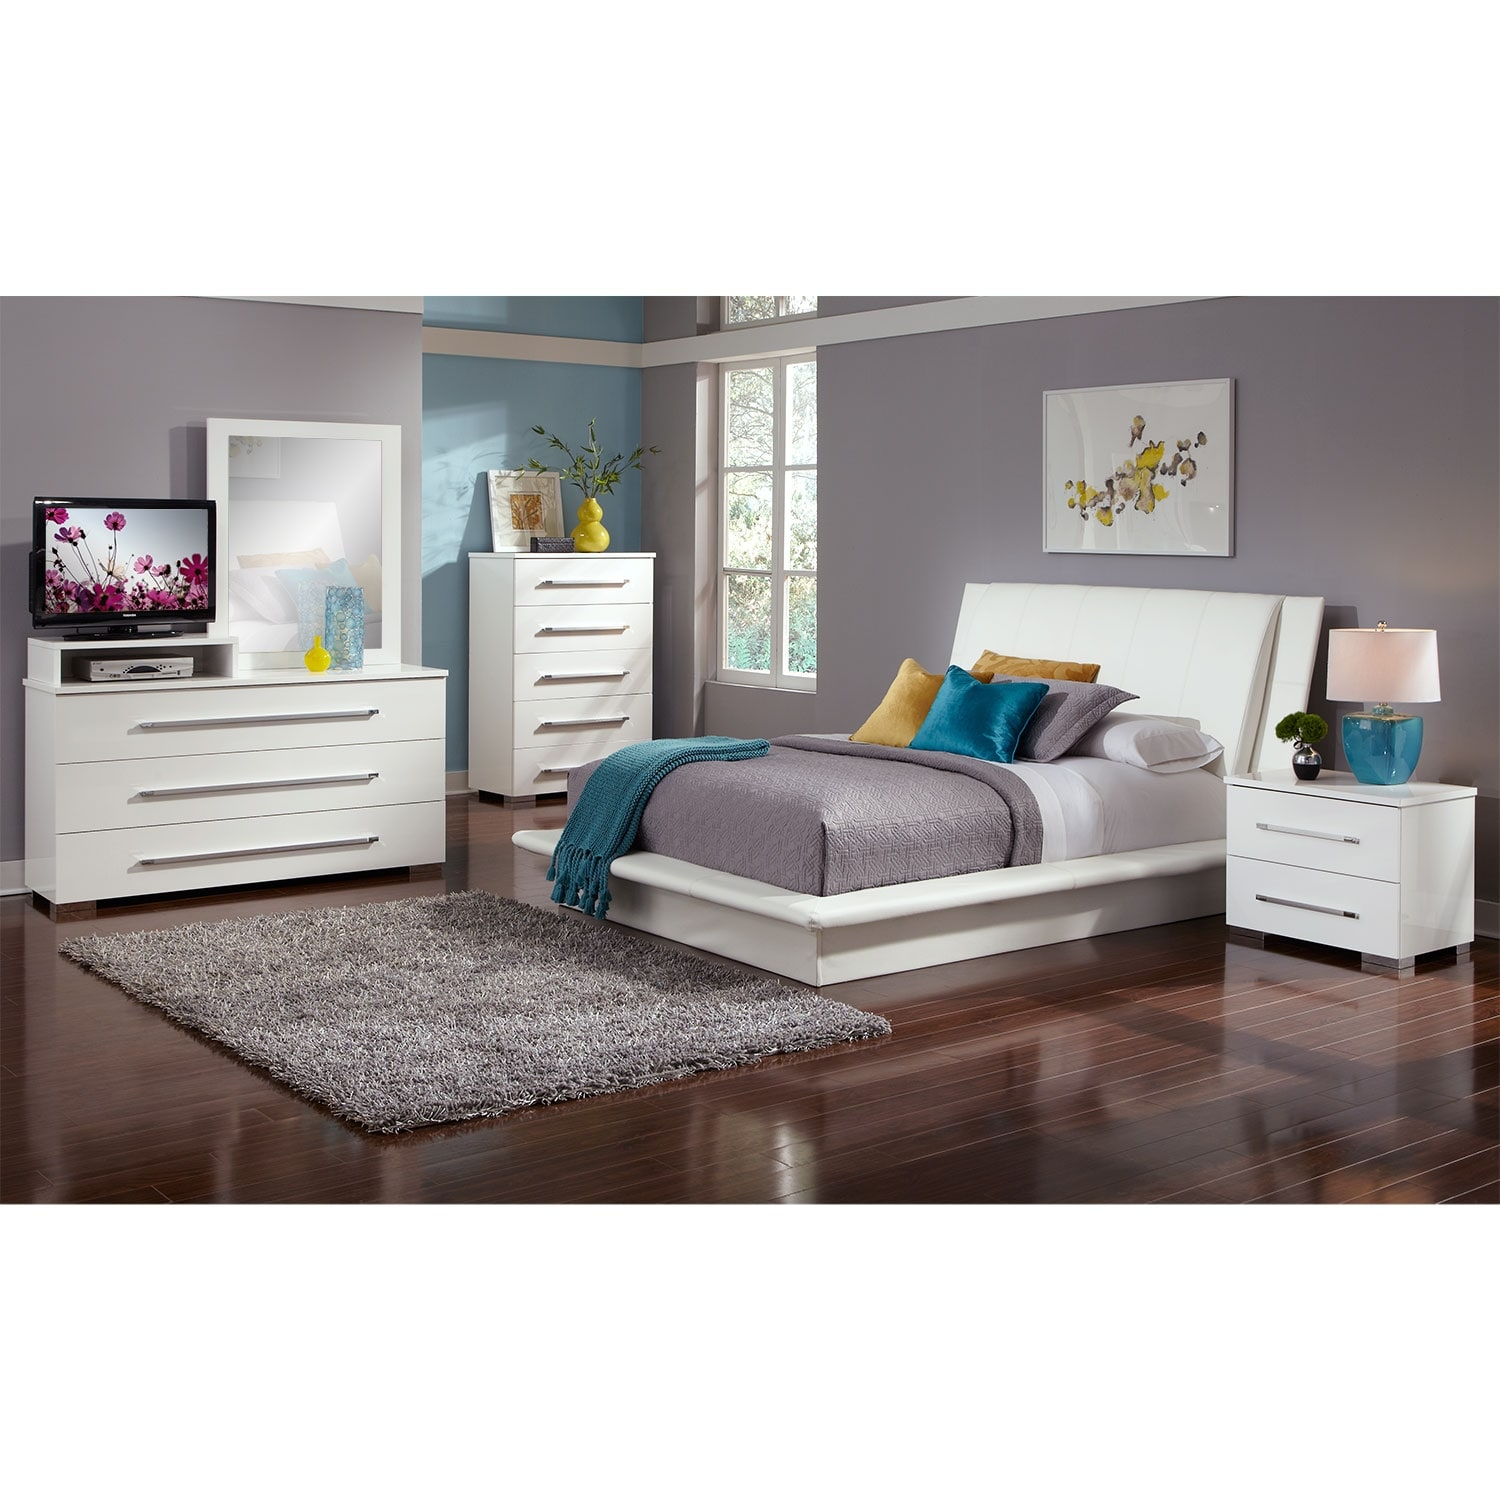 Outlet Bedroom Furniture White Leather Bedroom Set Luca Home White Leather Upholstered